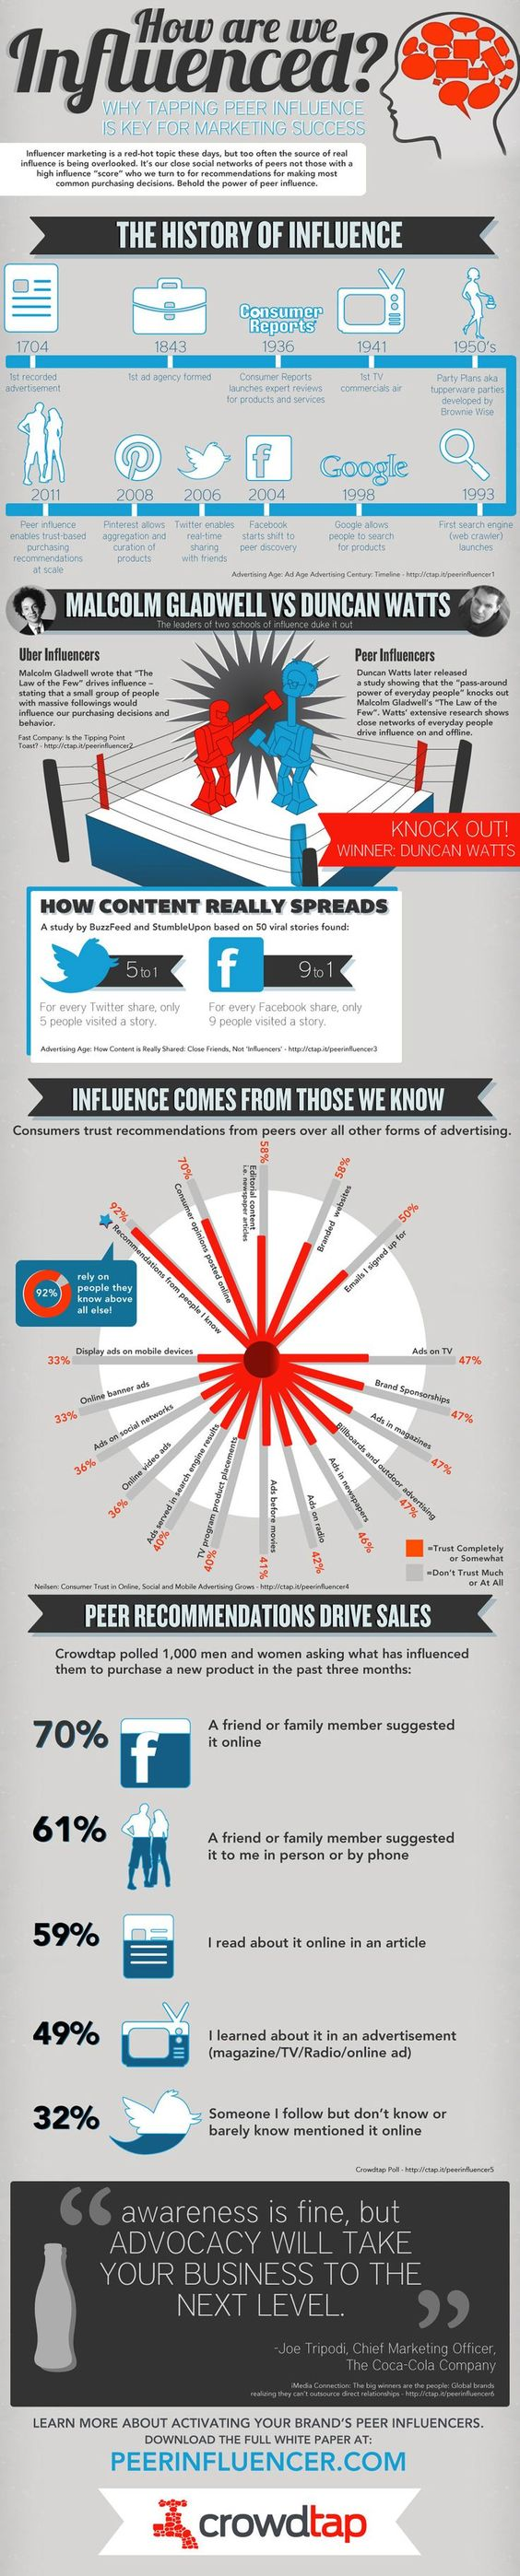 Tipping Point vs. Peer Influence #Infographic #OnlineInfluence #PR #smm #sm